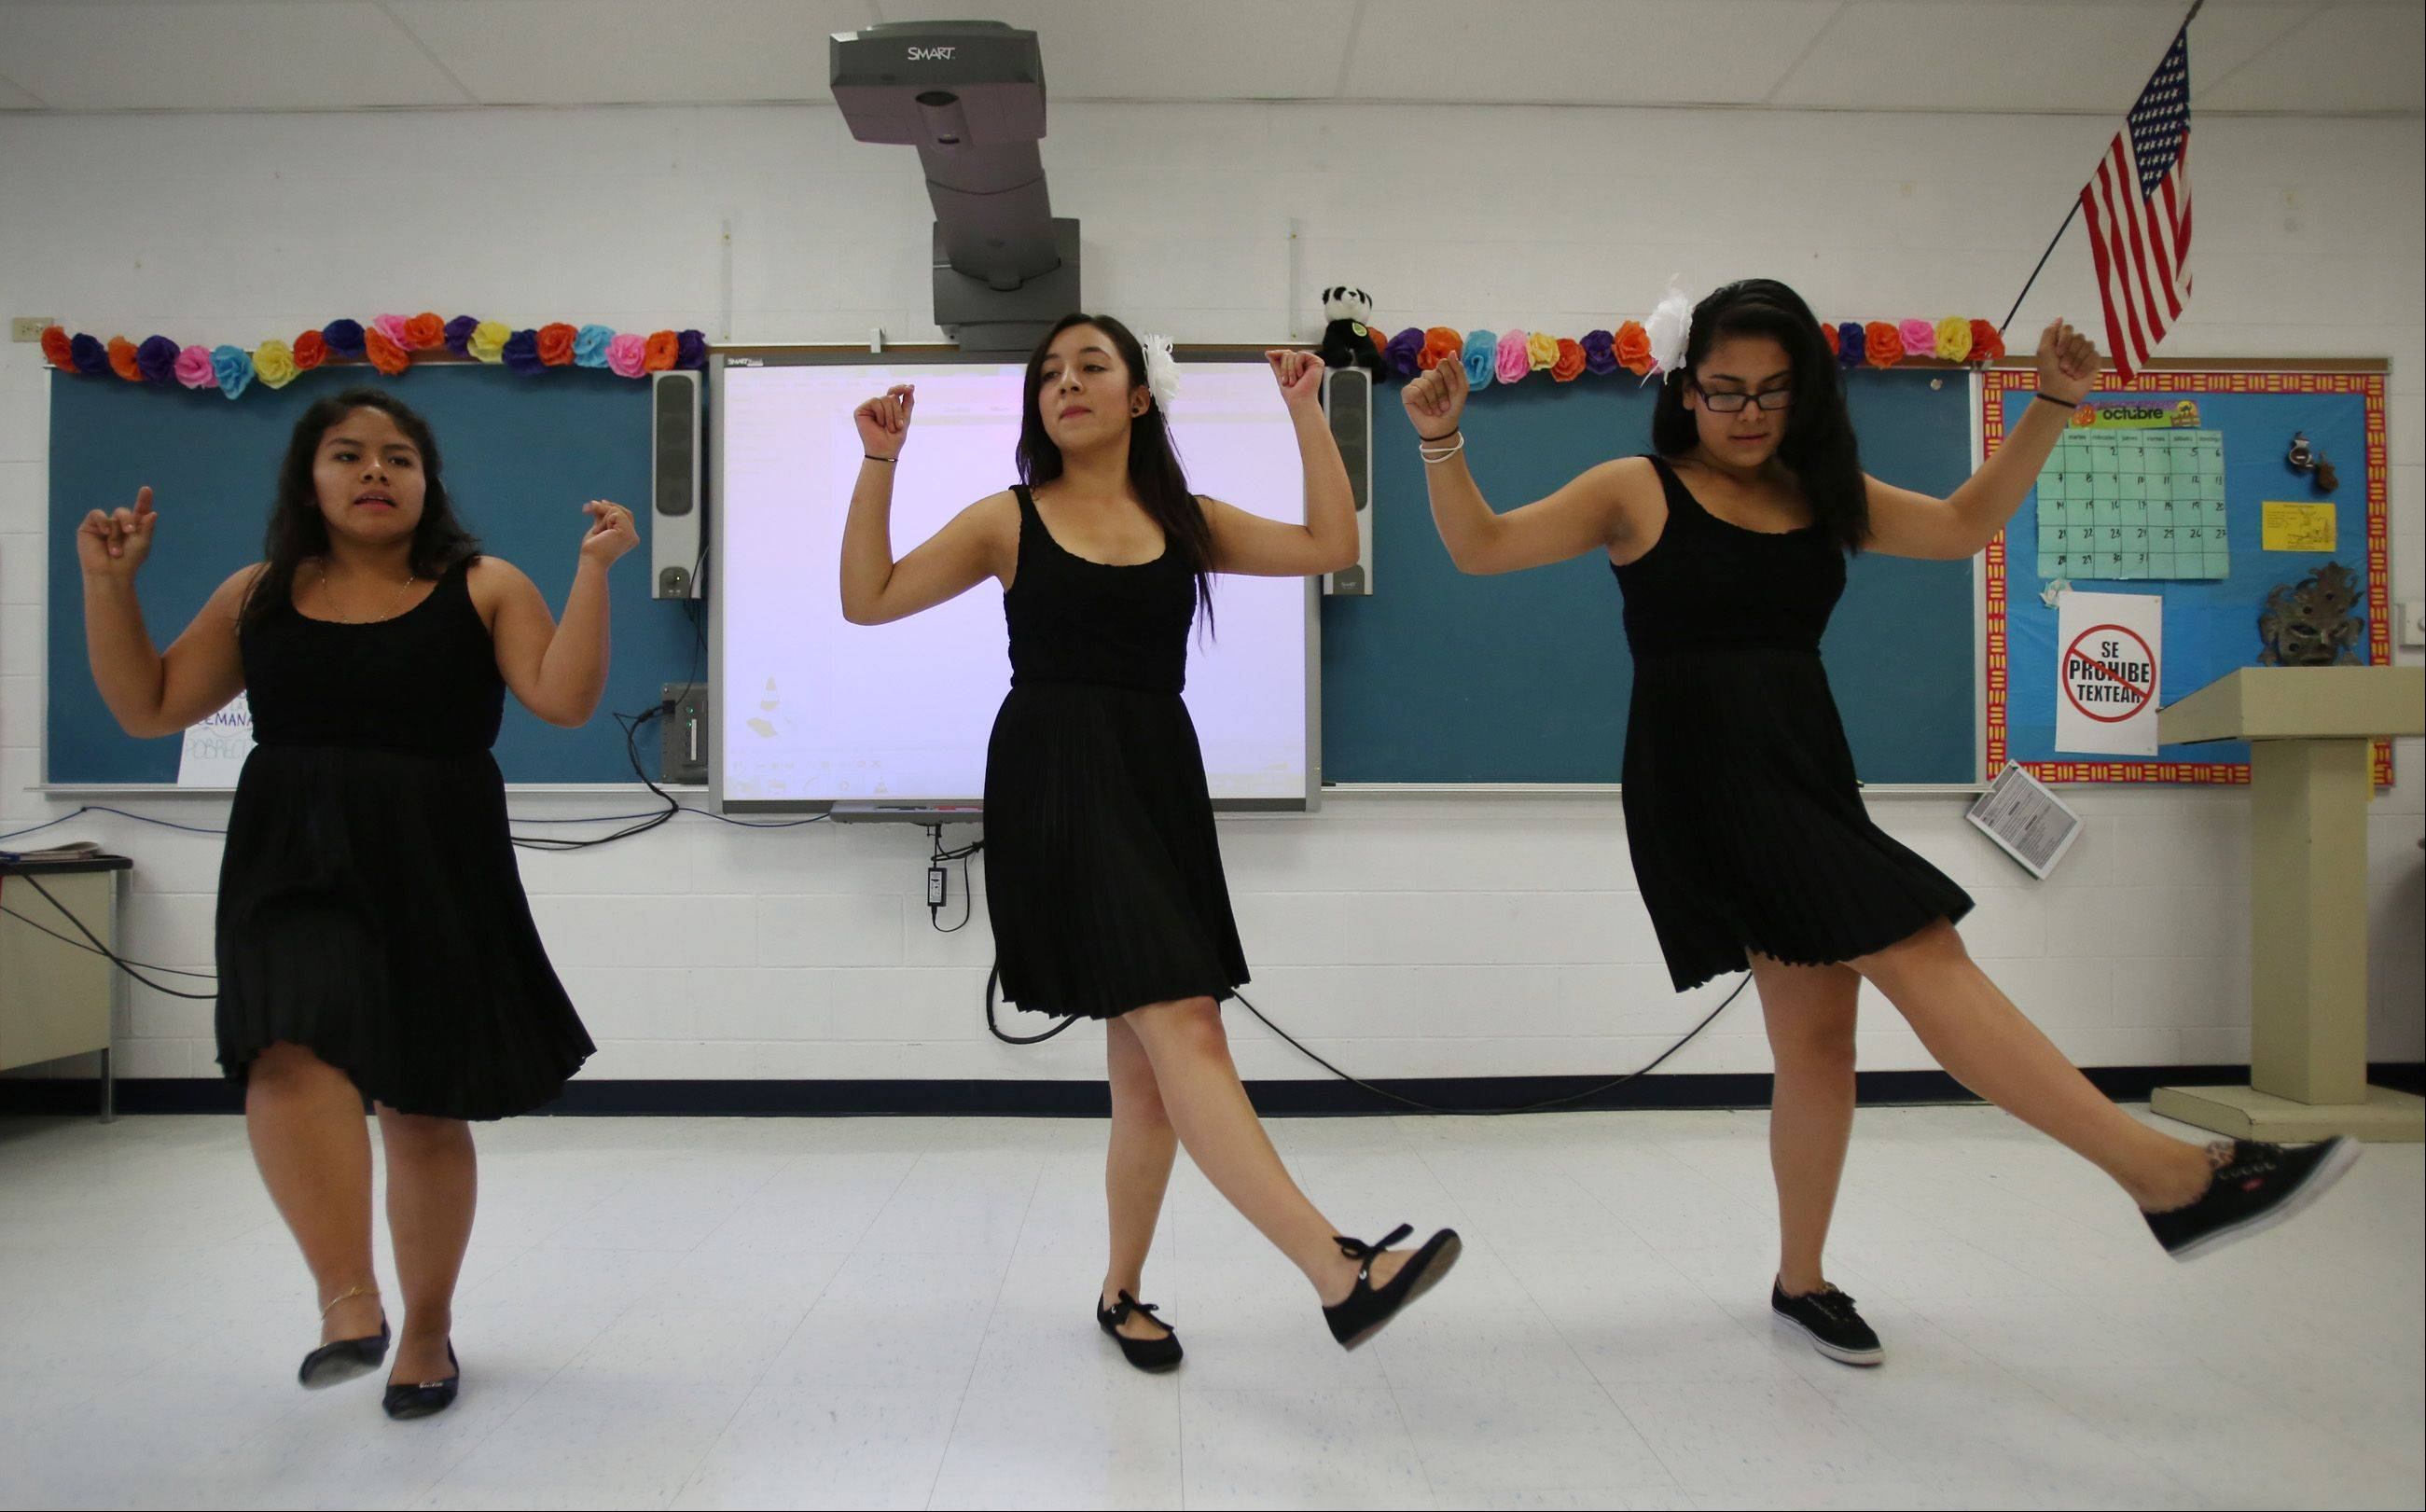 Dundee-Crown students Berenice Vidigaray, left, Veronica Carrillo and Mitzy Duran rehearse an Argentine dance number Thursday in preparation for the D300 Multicultural Festival Sunday at Spring Hill Mall in West Dundee. The students are among more than 20 groups that will perform at the inaugural festival, which features talent from within the district and community.